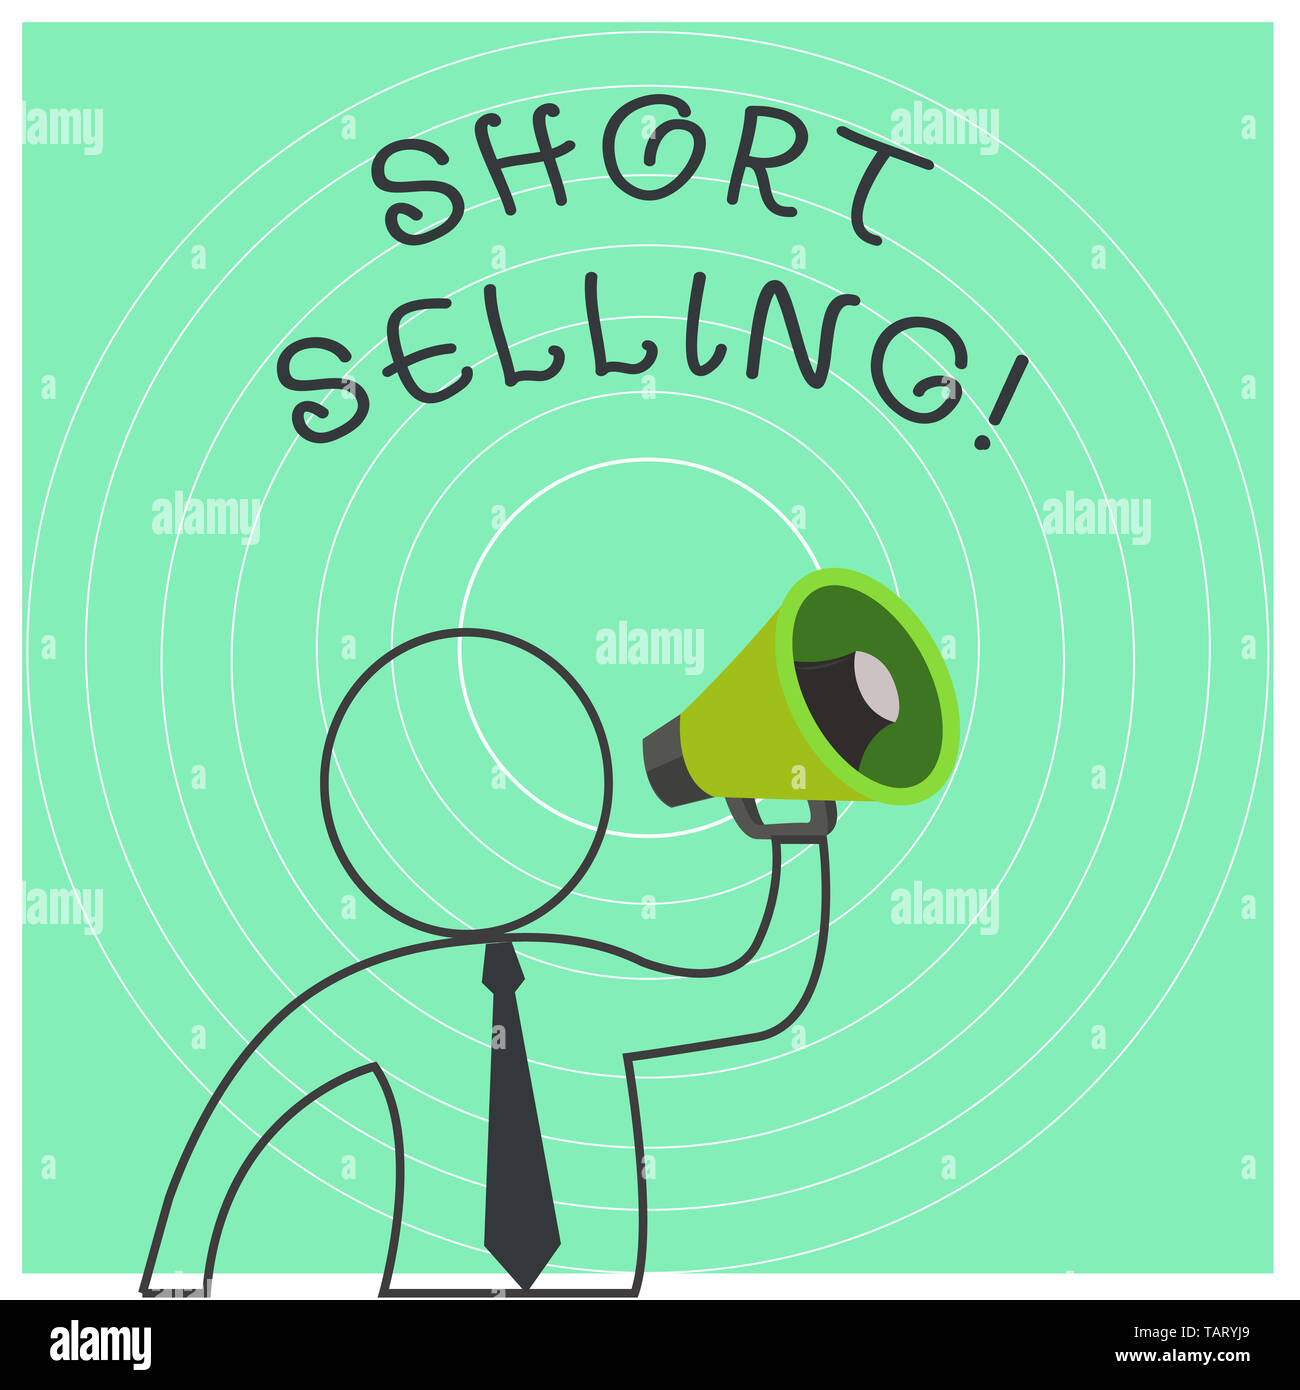 Forex Trading Stock Photos Forex Trading Stock Images Page 8 Alamy -